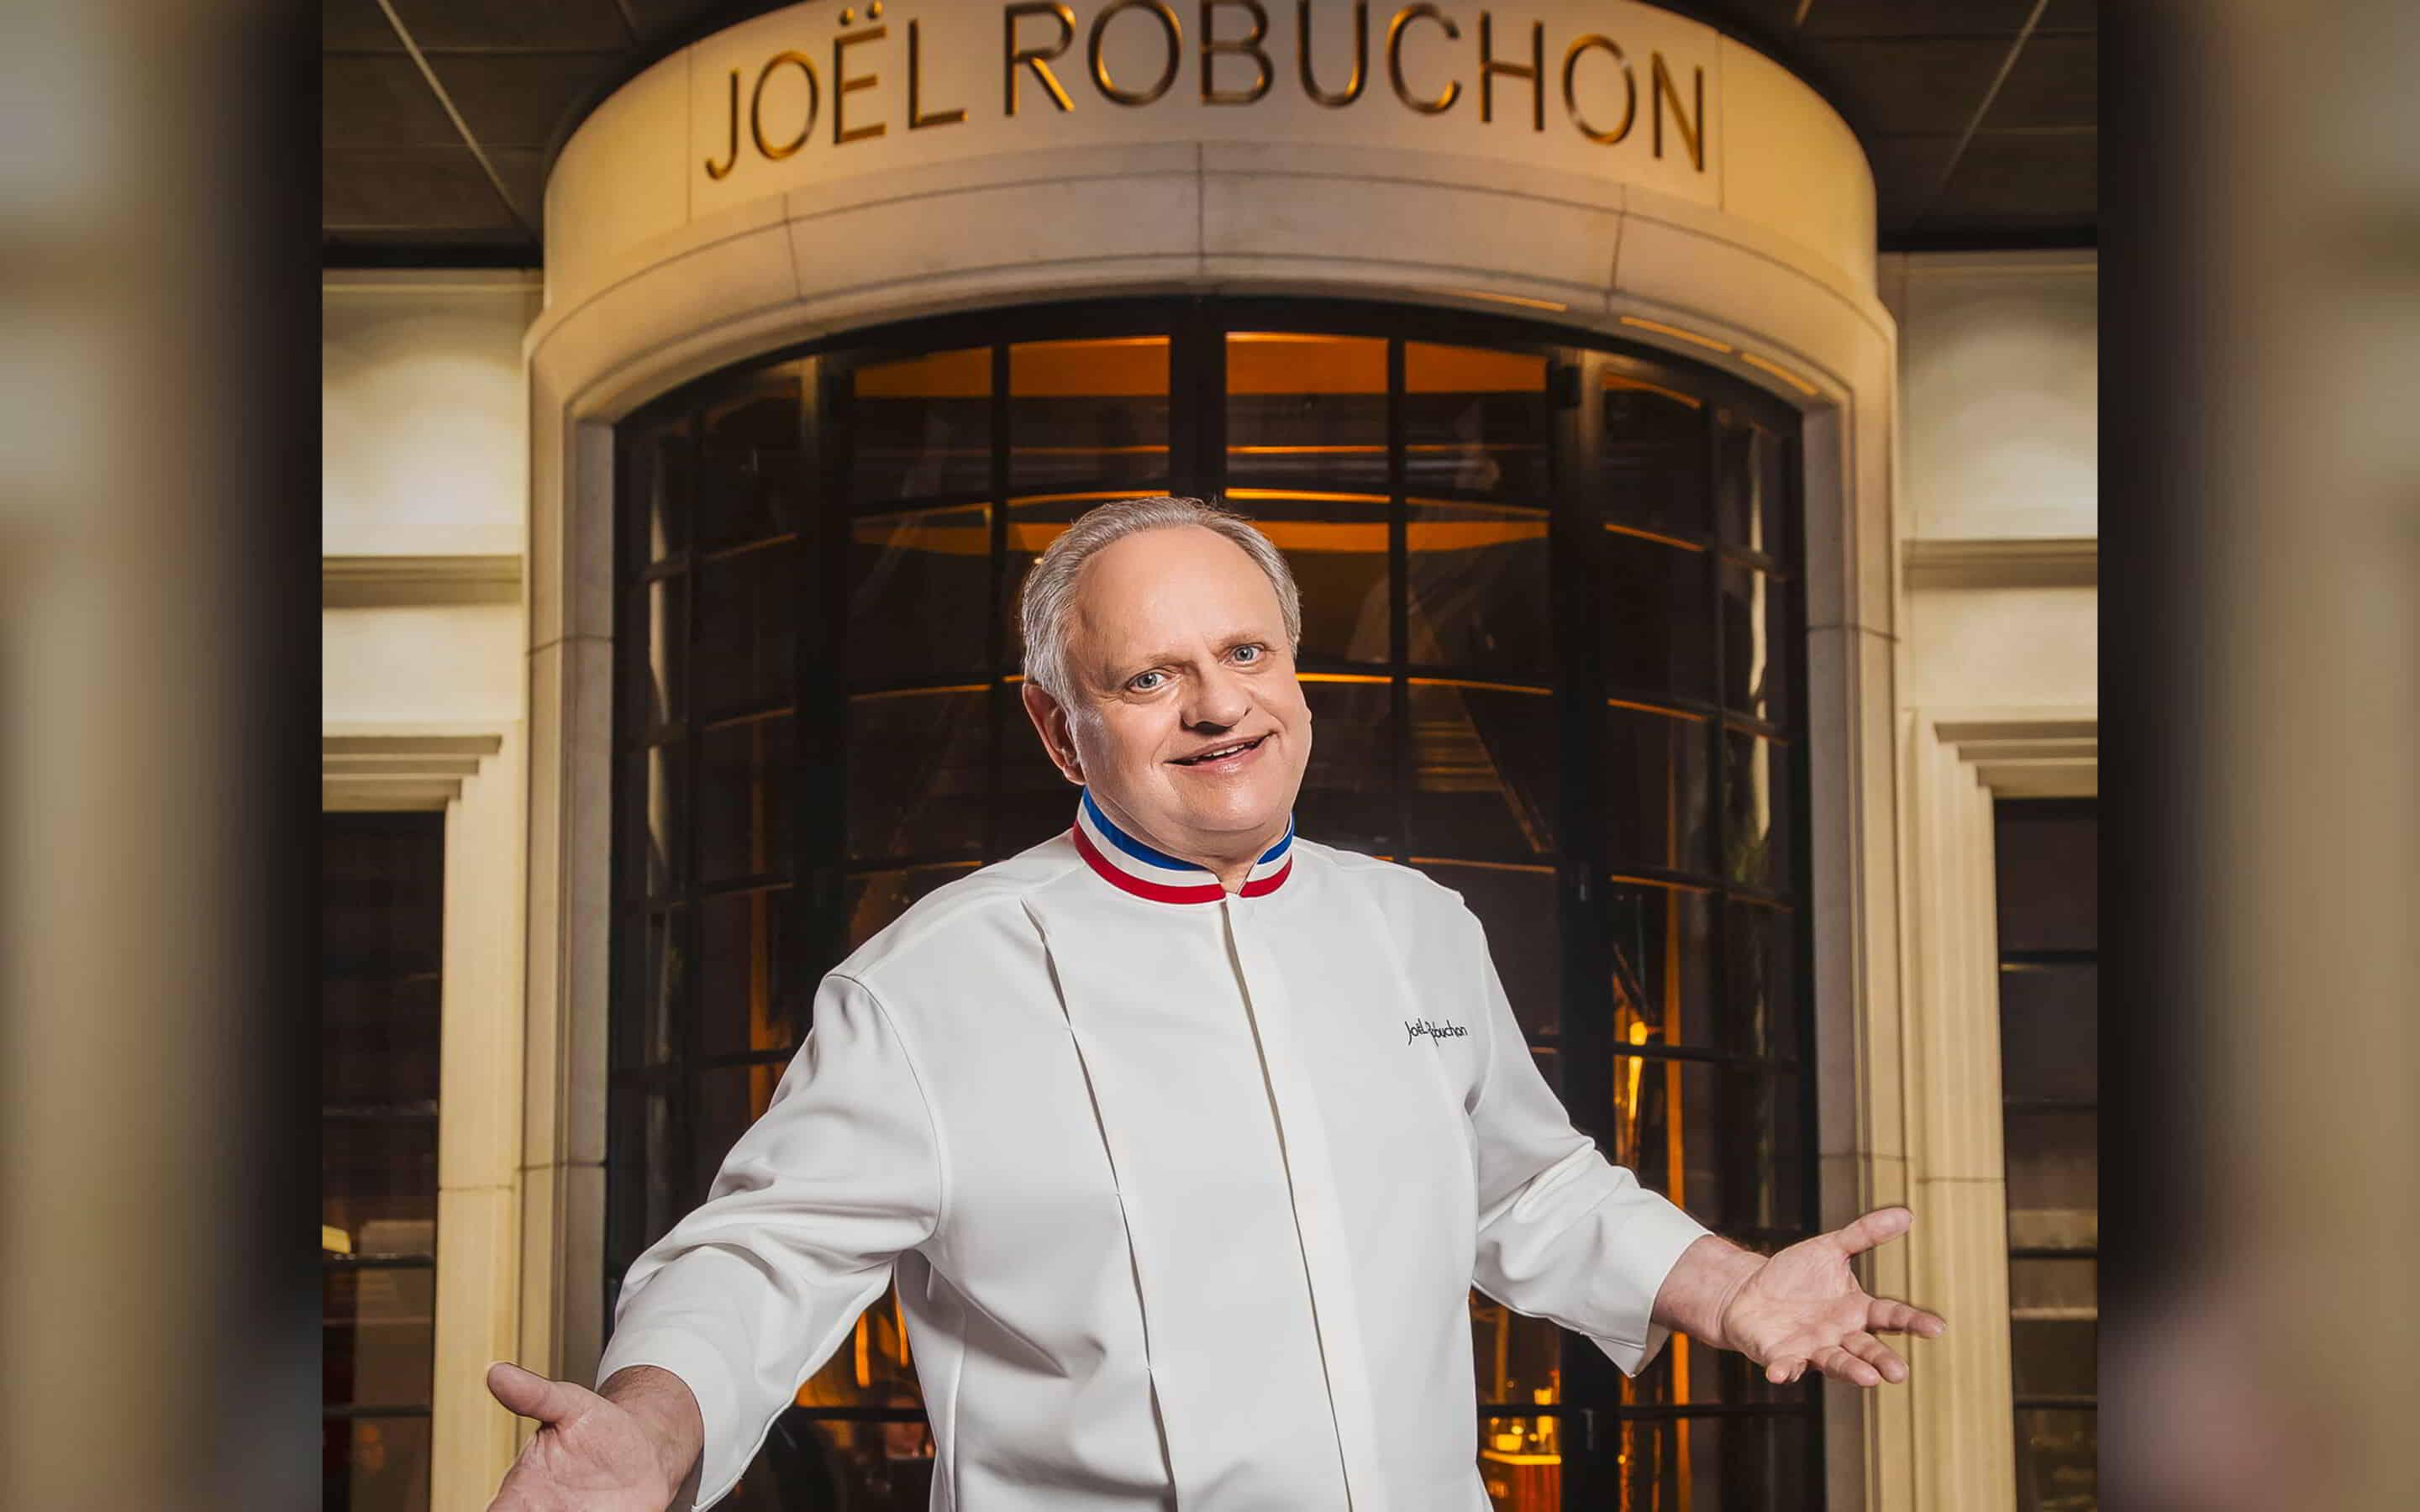 Joël Robuchon was named France's Chef of the Century by the esteemed Gault Milau restaurant guide.